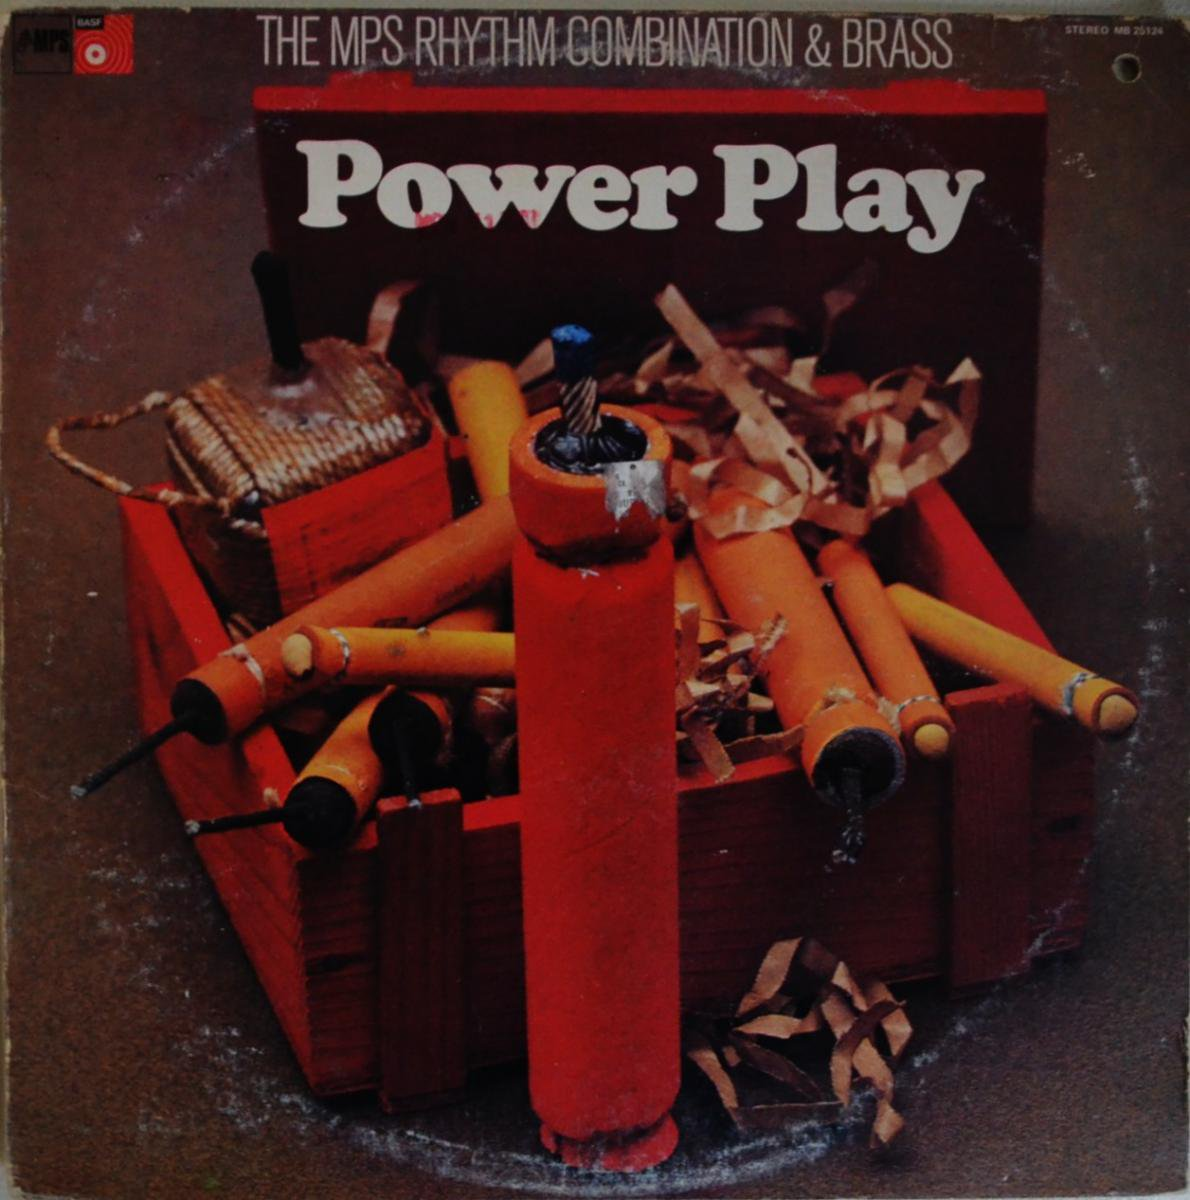 THE MPS RHYTHM COMBINATION & BRASS / POWER PLAY (LP)